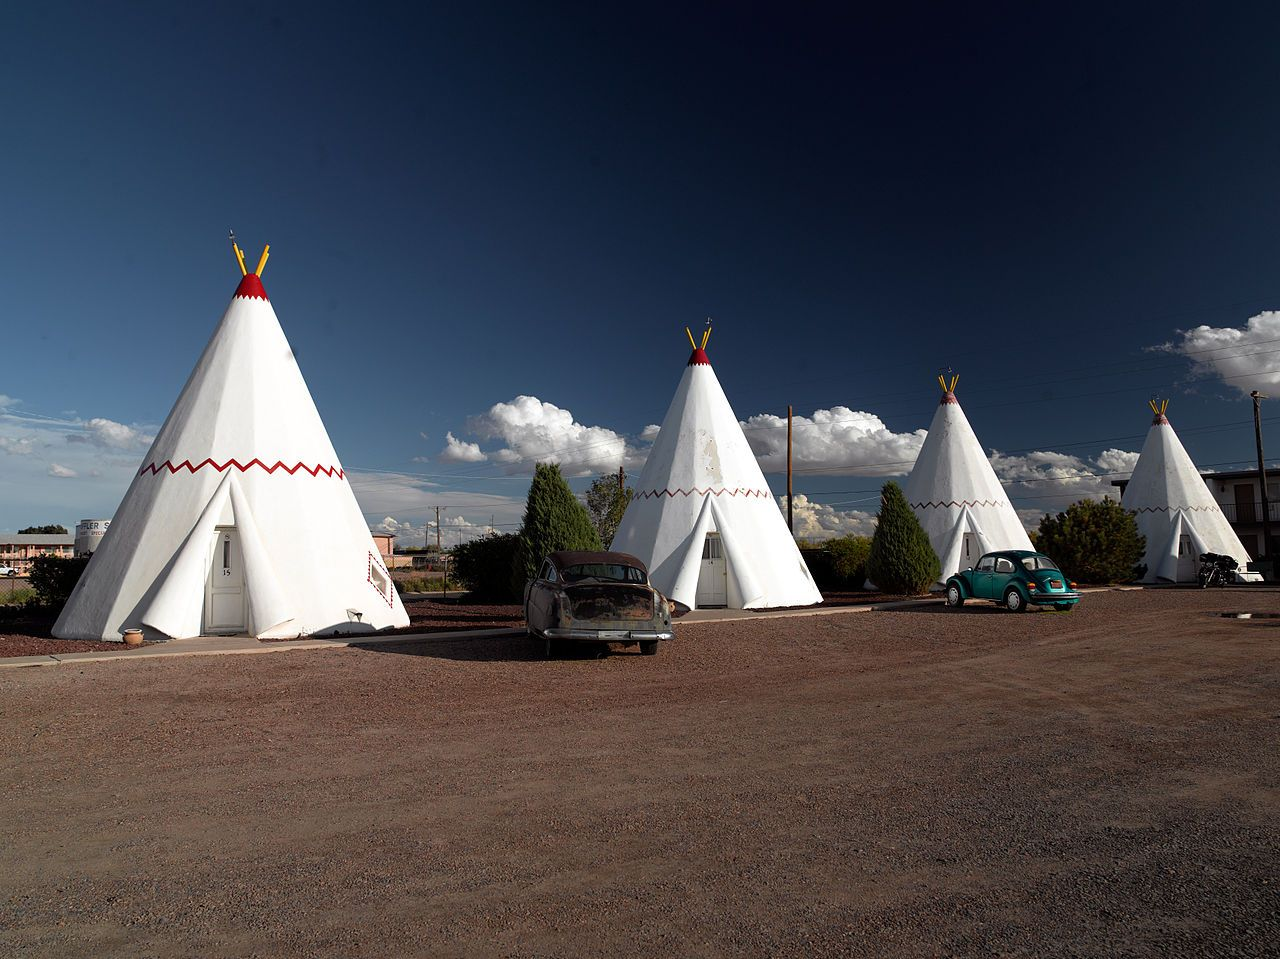 Wigwam Motel In Holbrook Ariz National Register Of Historic Places The Only Remaining Village Location Seven Originals